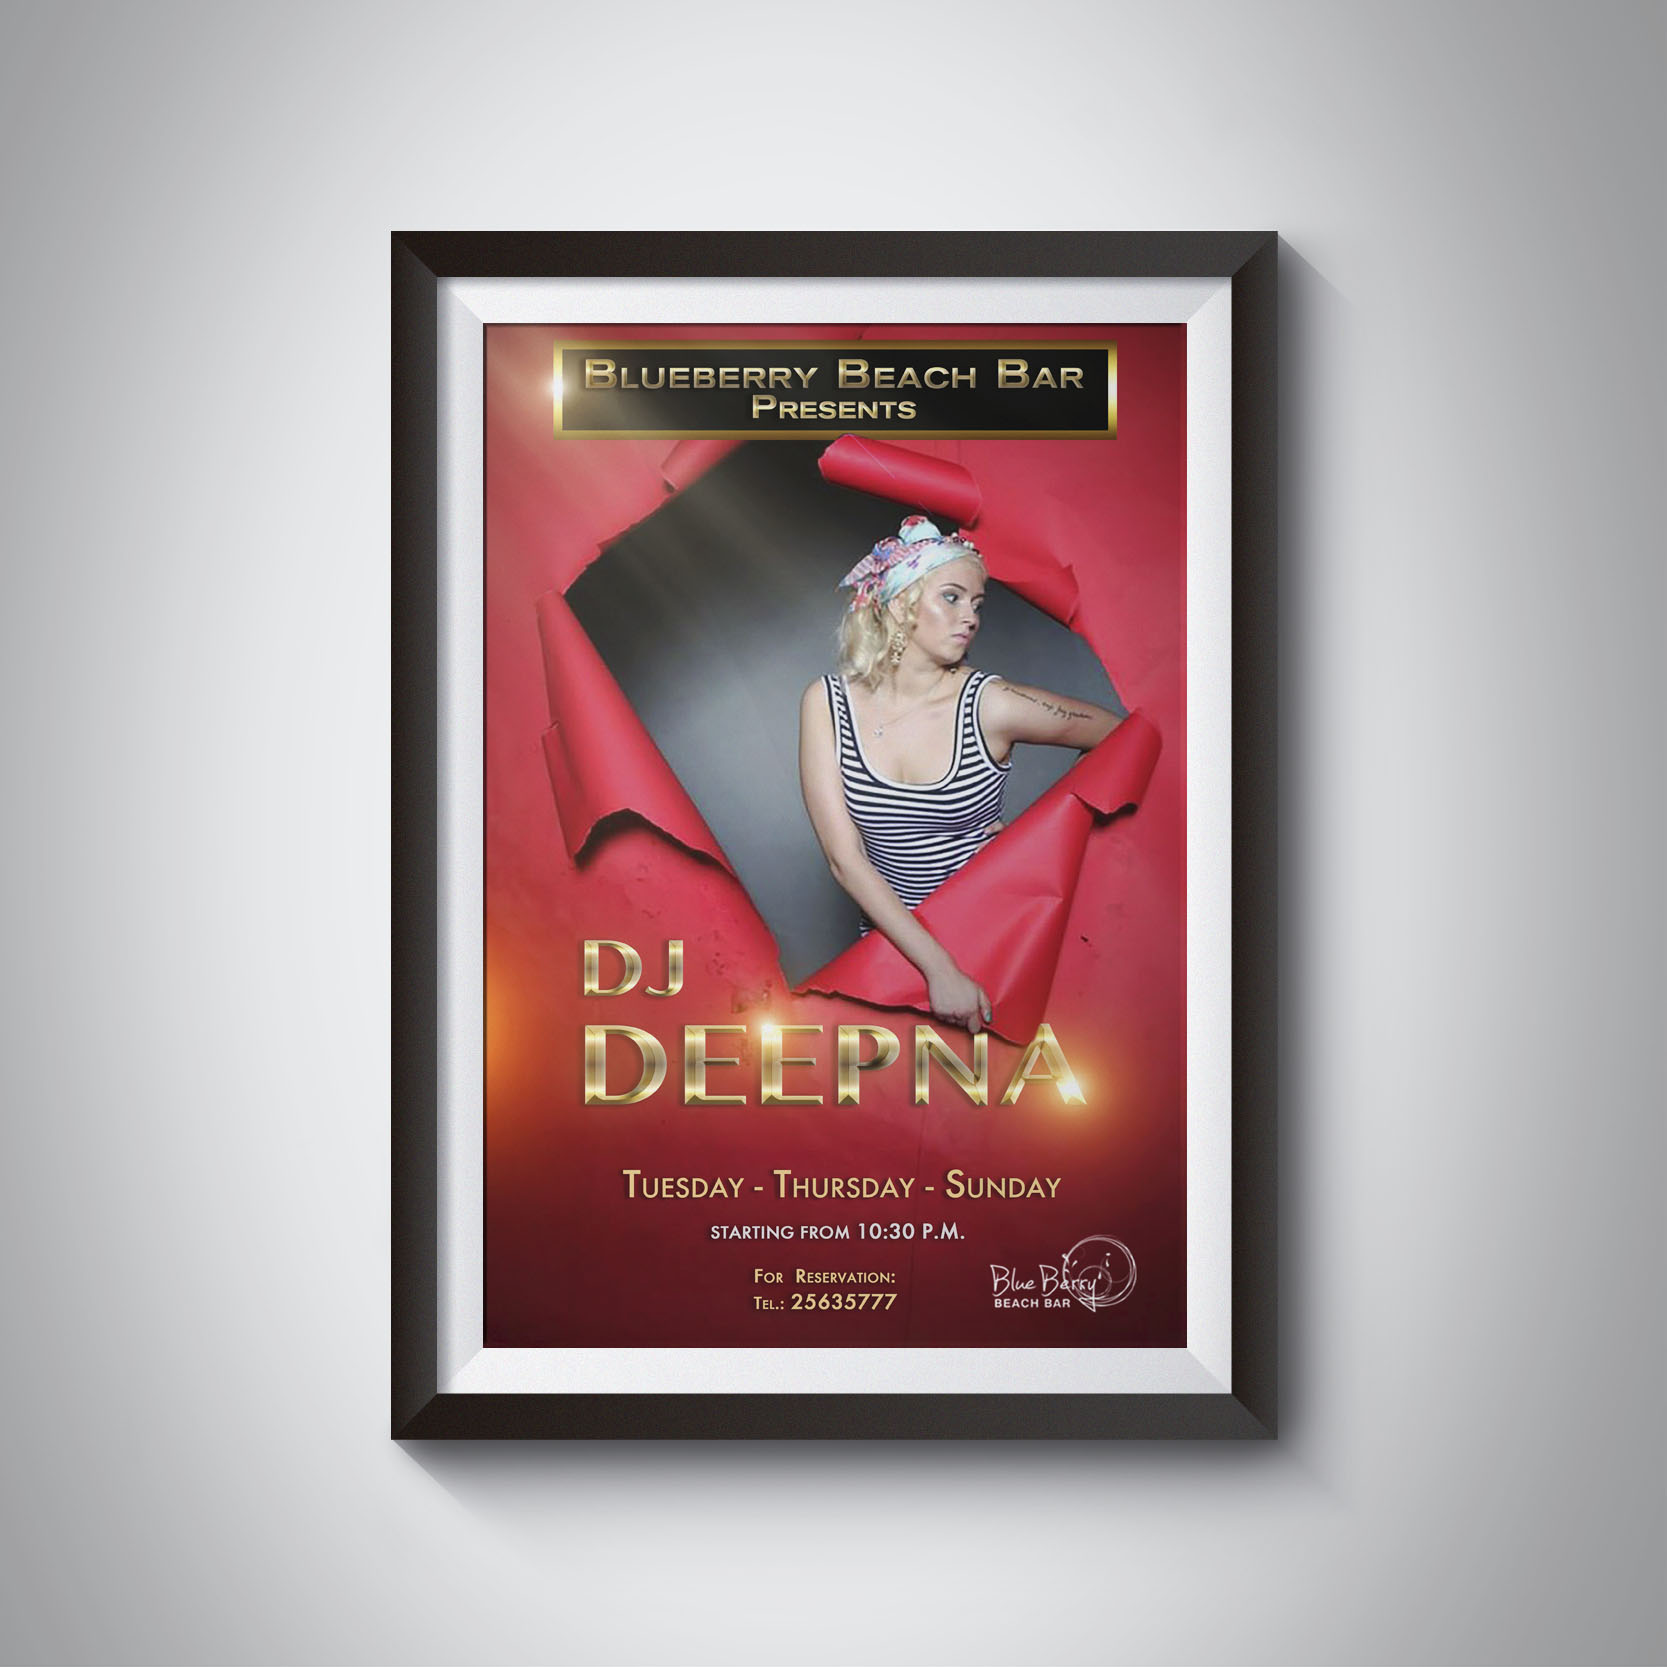 Design and Printing | Dali Advertising - Graphic design and advertising